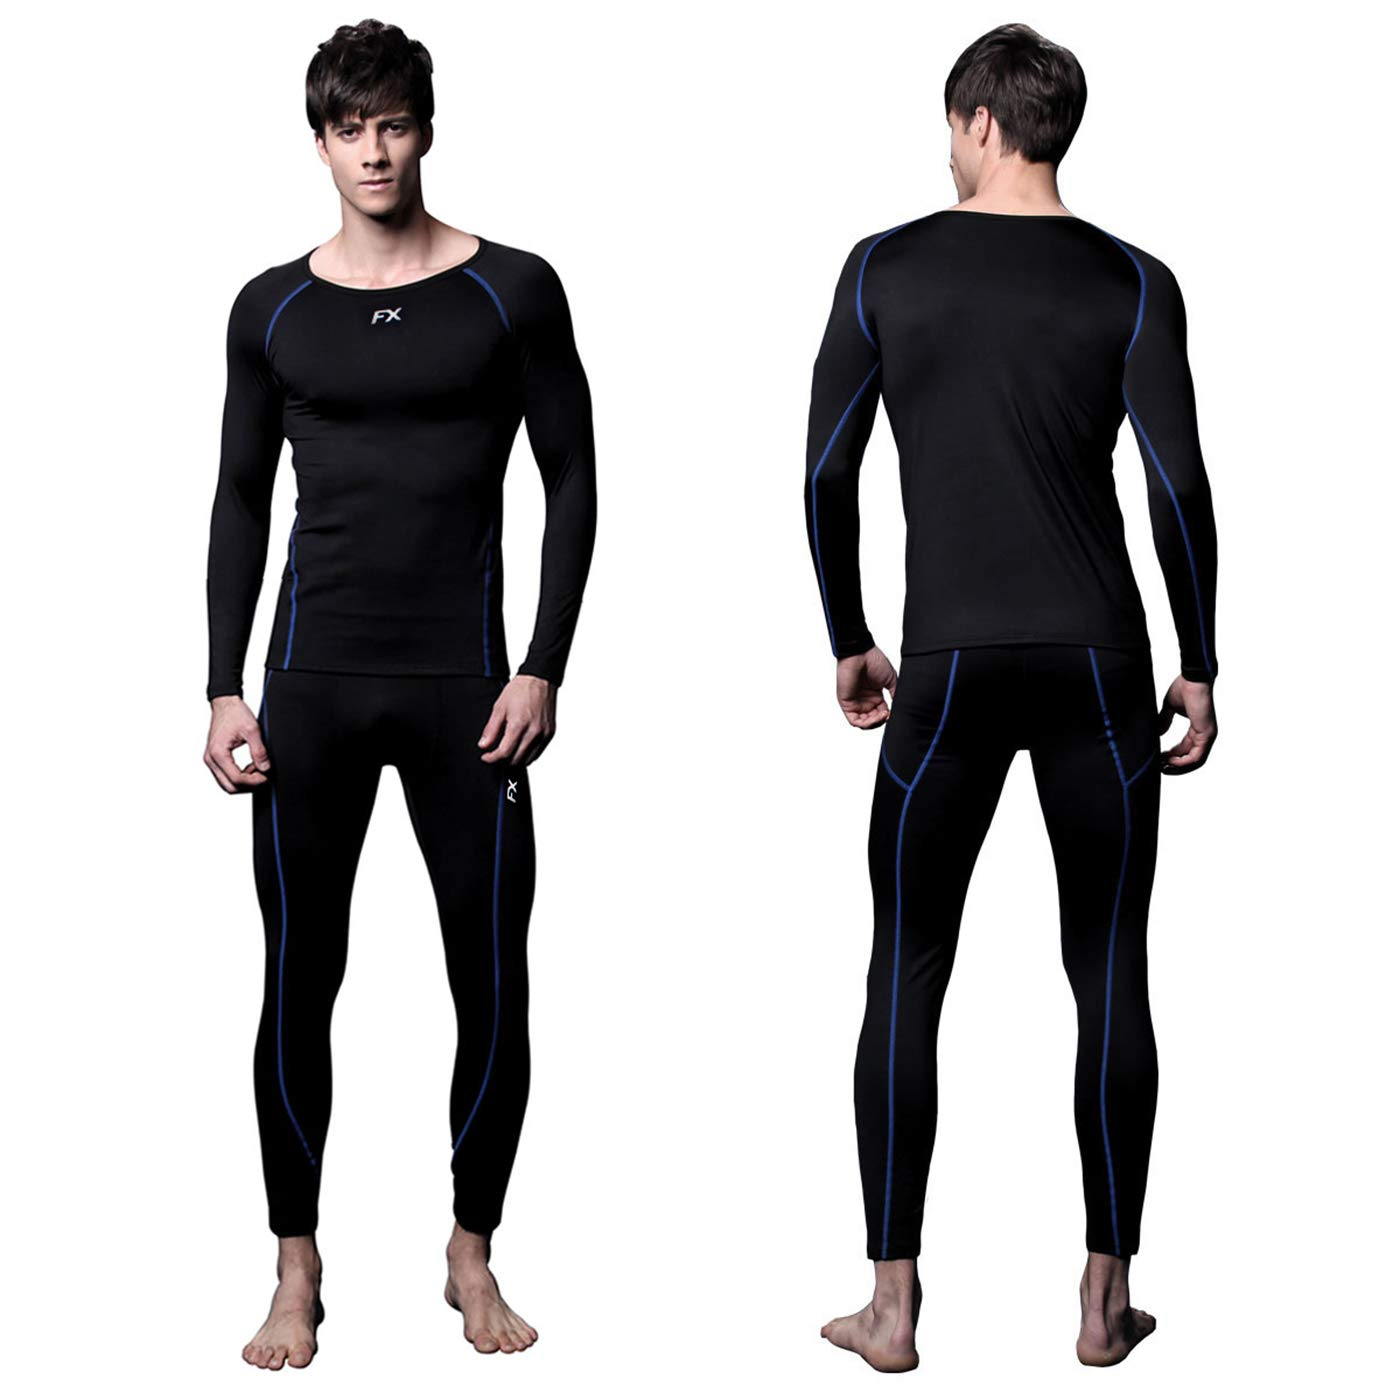 9d0c095c6bc7 FITEXTREME Mens MAXHEAT Compression Performance Long Johns Thermal Underwear  at Amazon Men's Clothing store: